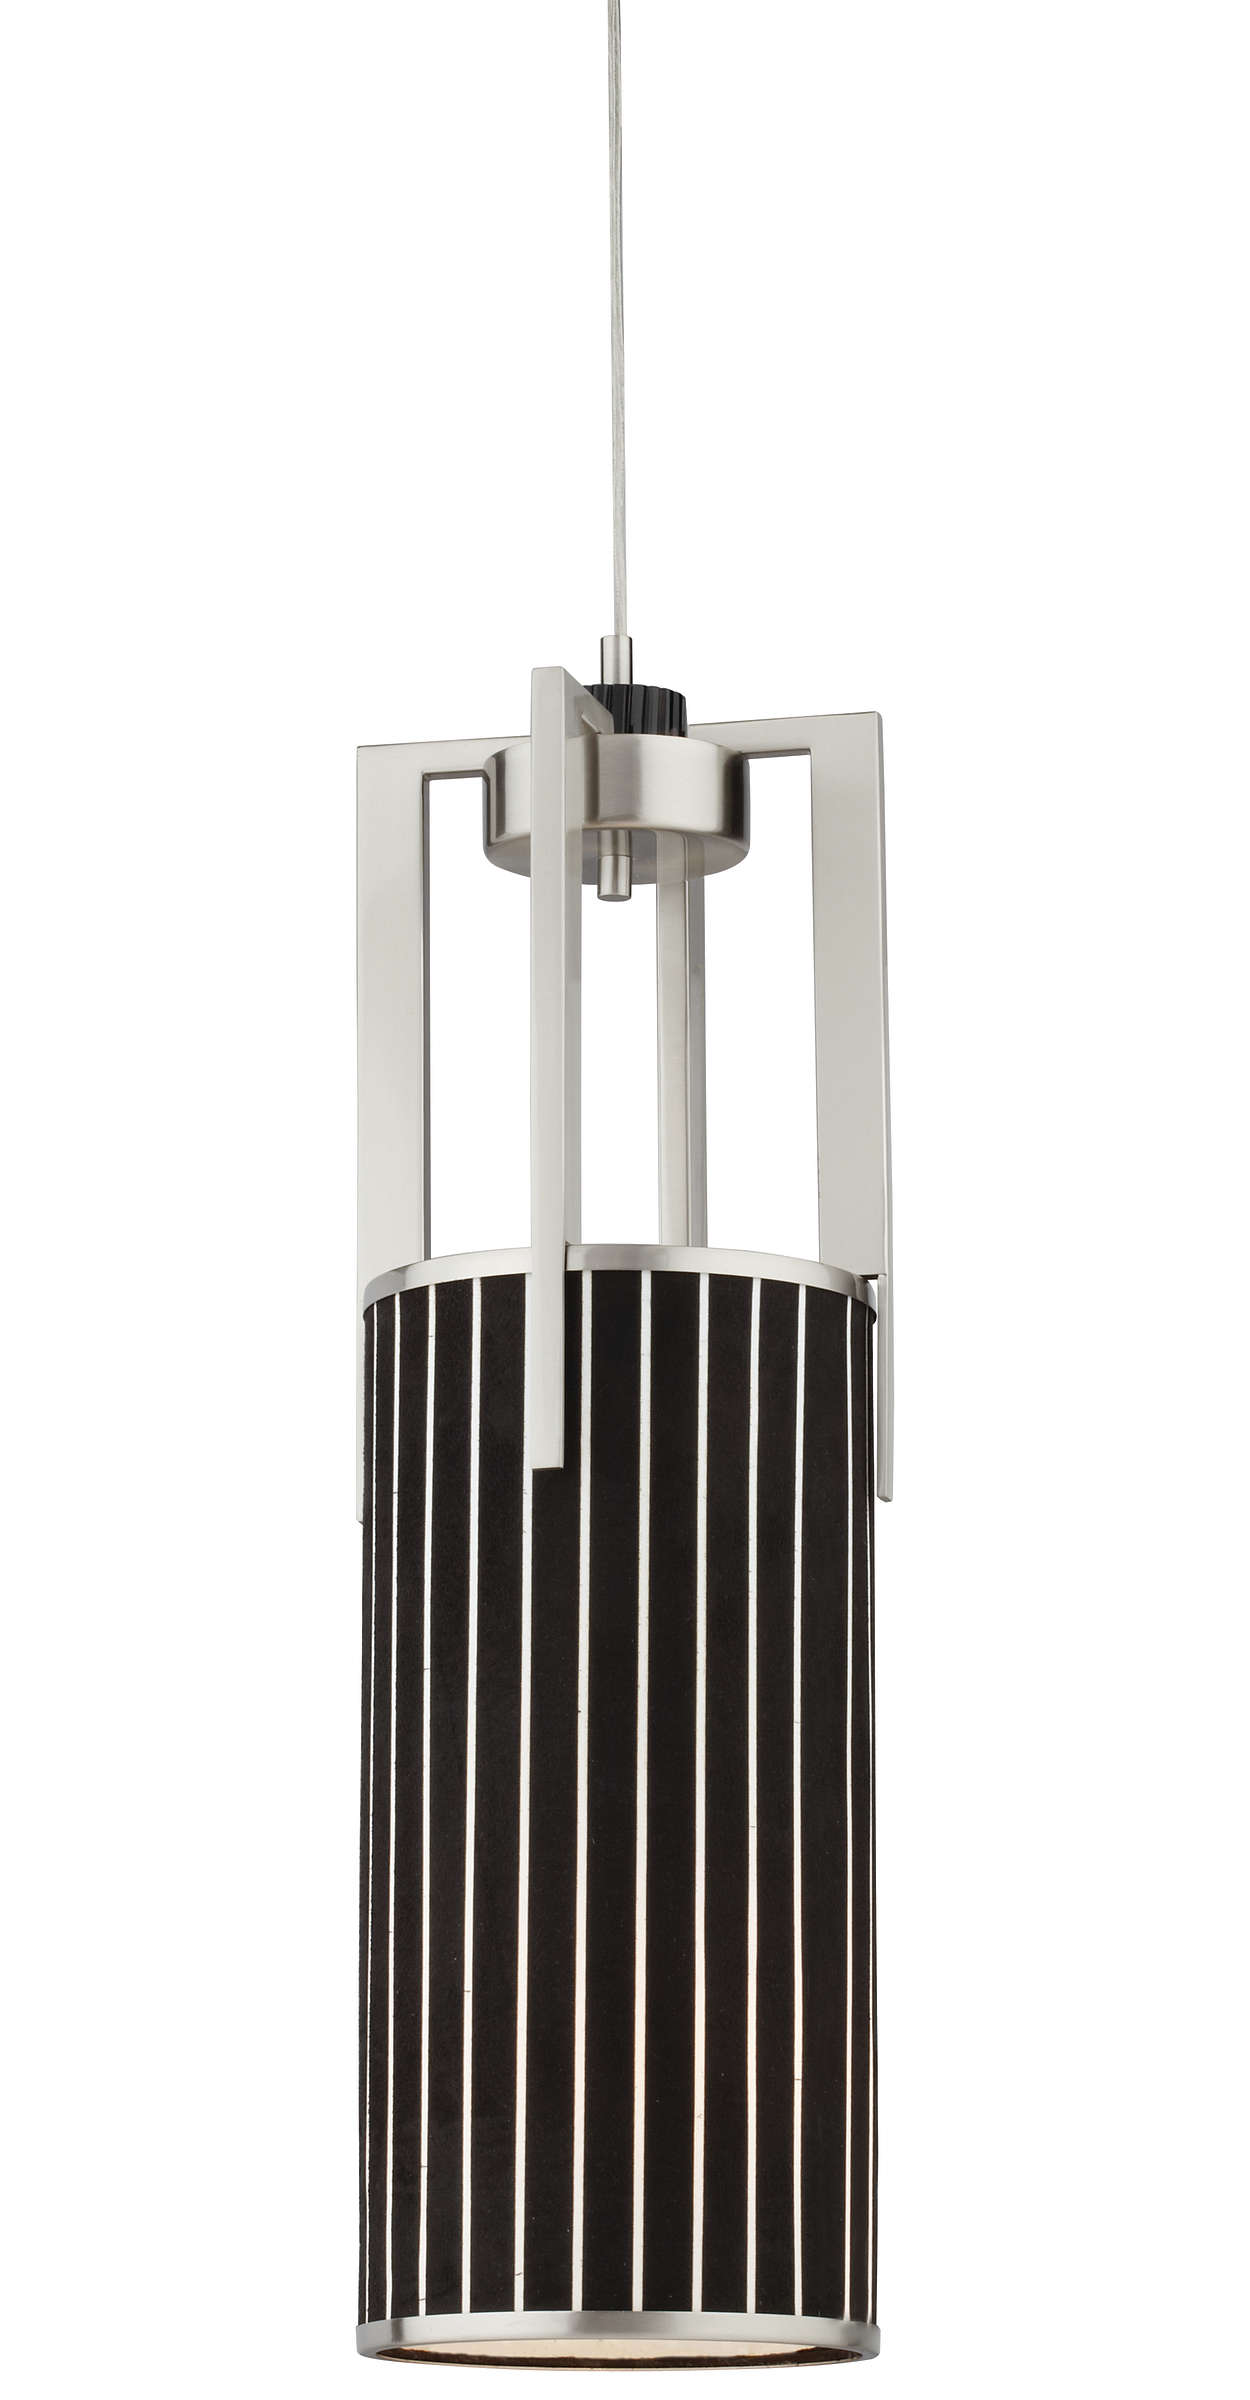 Haberdasher 1-light Pendant, Brushed Nickel finish